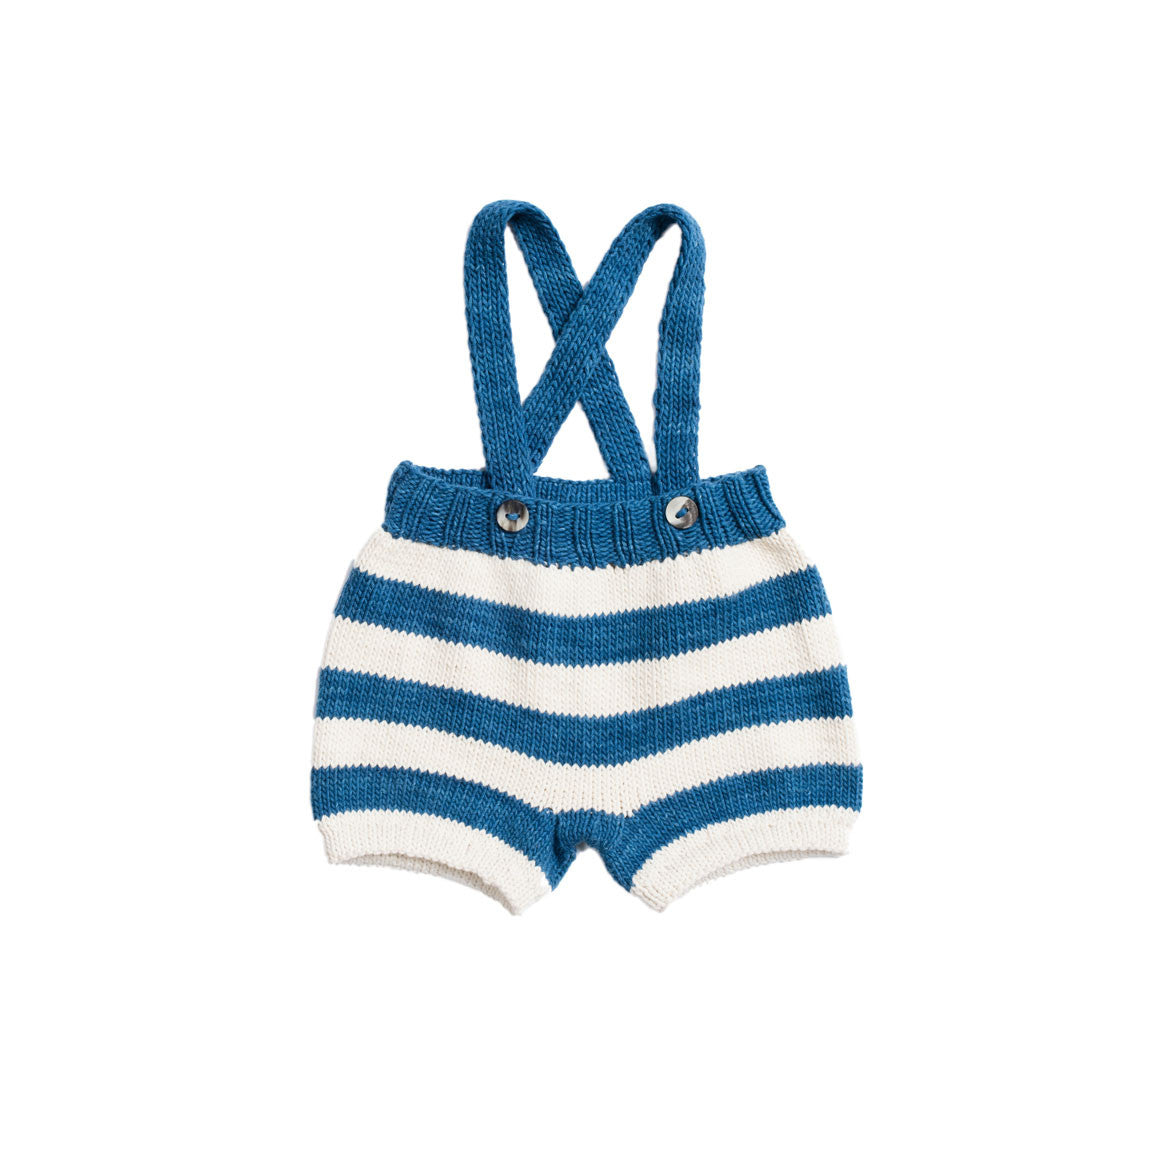 Misha & Puff Natural/Indigo Striped Suspender Shorts - Ladida